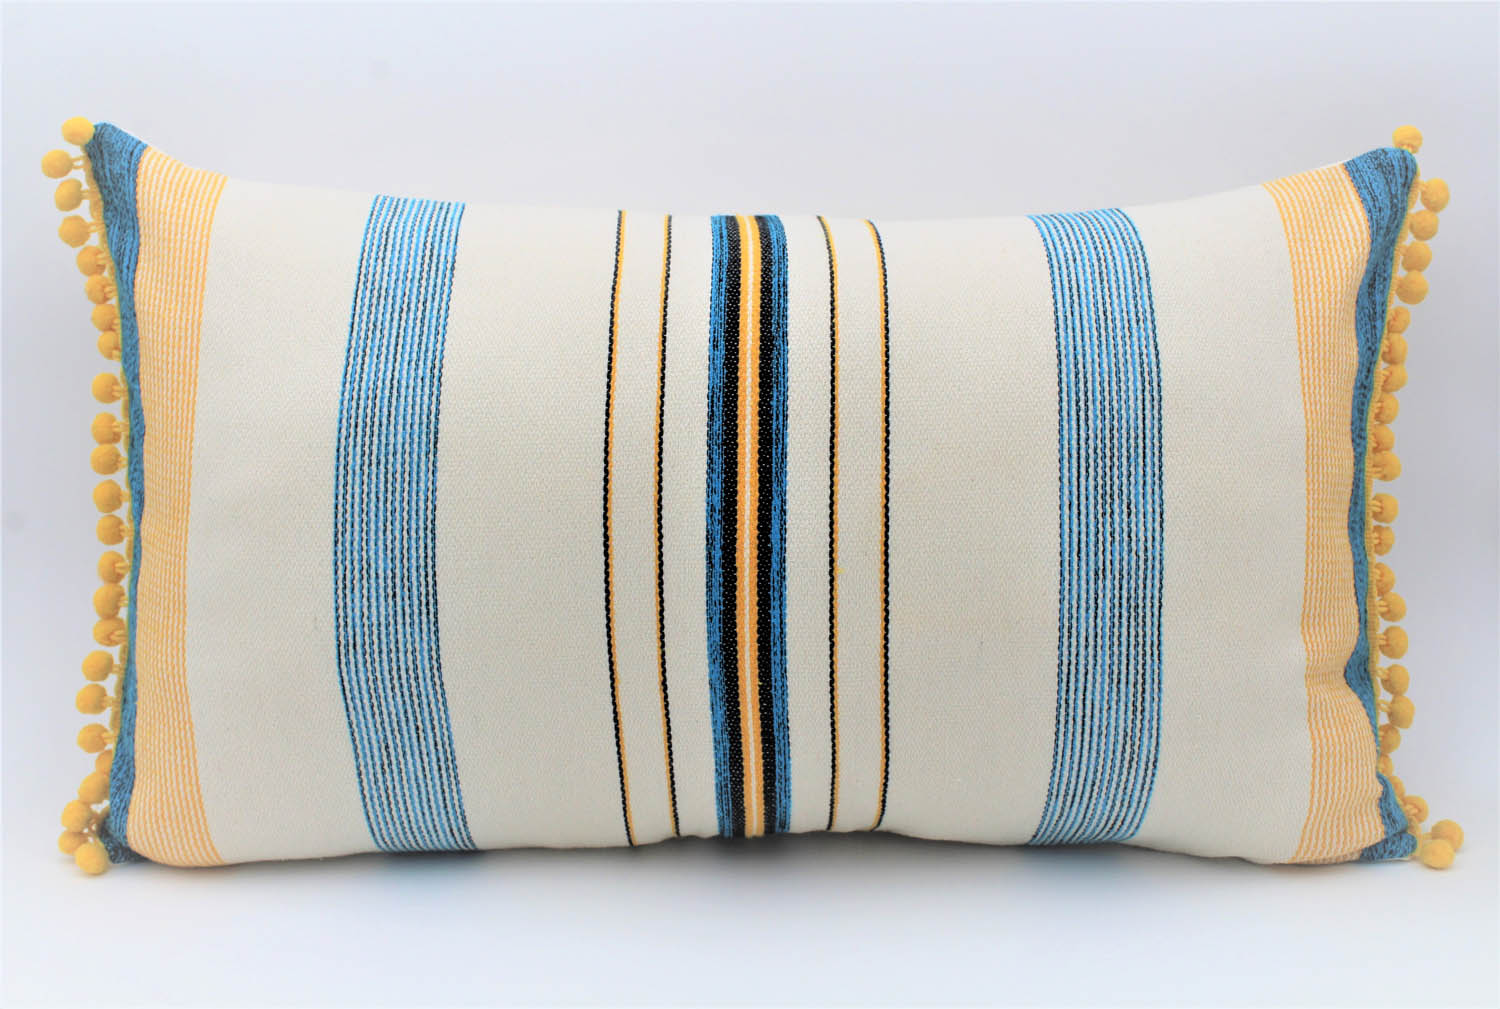 La Playa Pillow Collection: Yellow and Blue Stripes with Yellow Pom Poms Small Lumbar